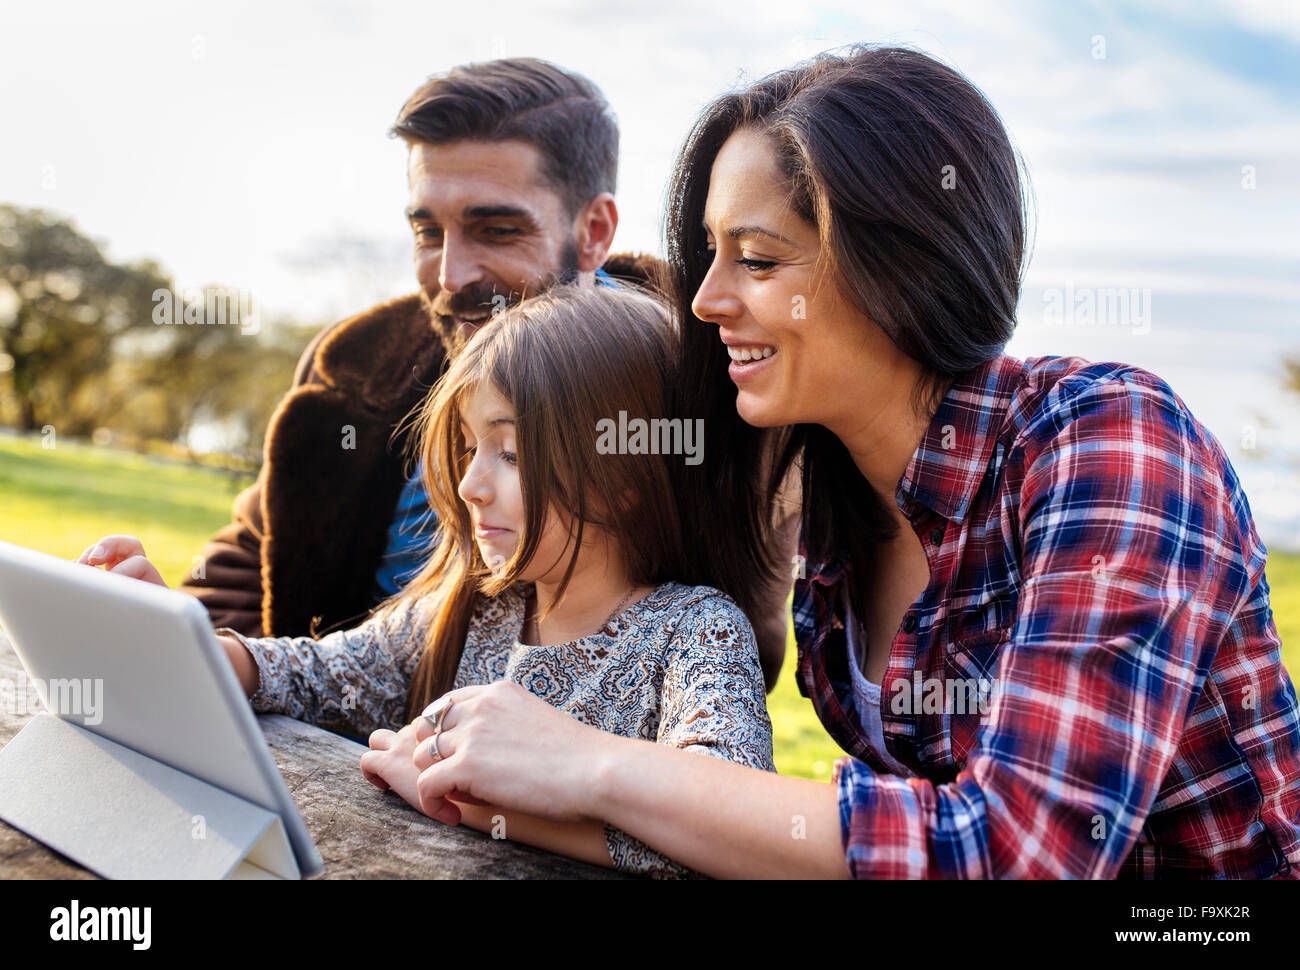 Happy parents with daughter using digital tablet outdoors - Stock Image